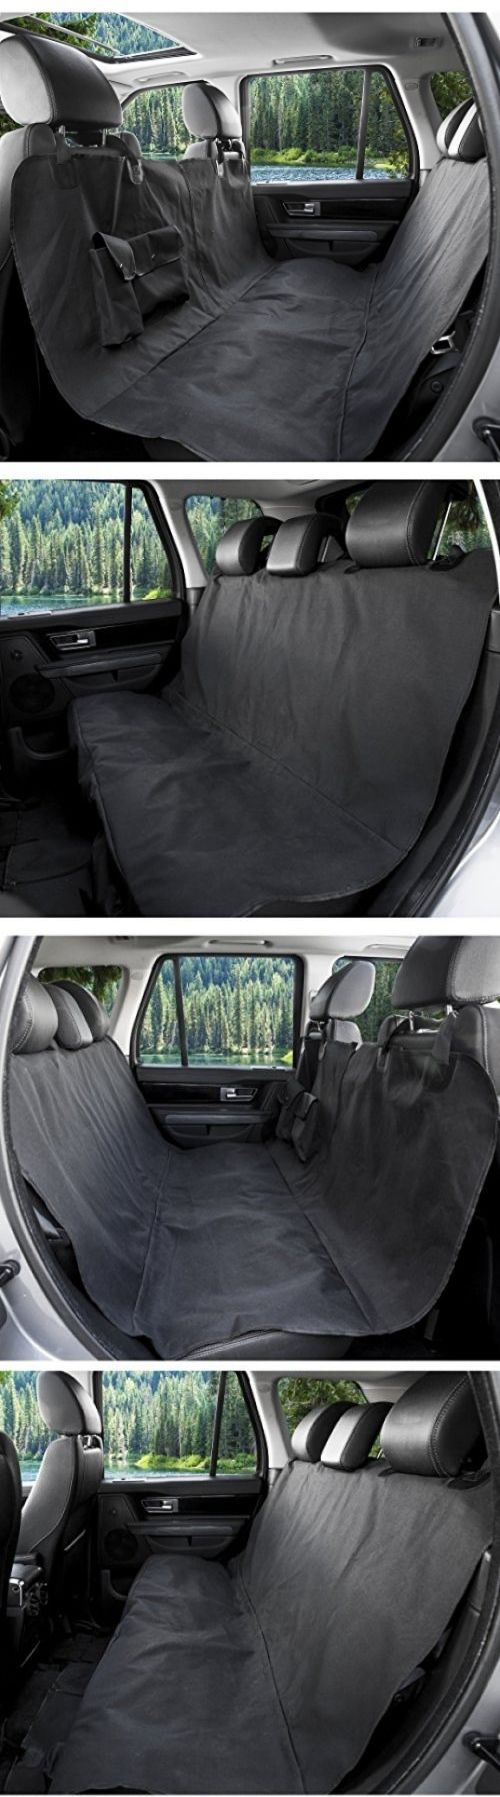 Car Seat Covers 117426: Barksbar Original Pet Seat Cover For Large Cars, Trucks And Suvs - Black, And -> BUY IT NOW ONLY: $38.3 on eBay!